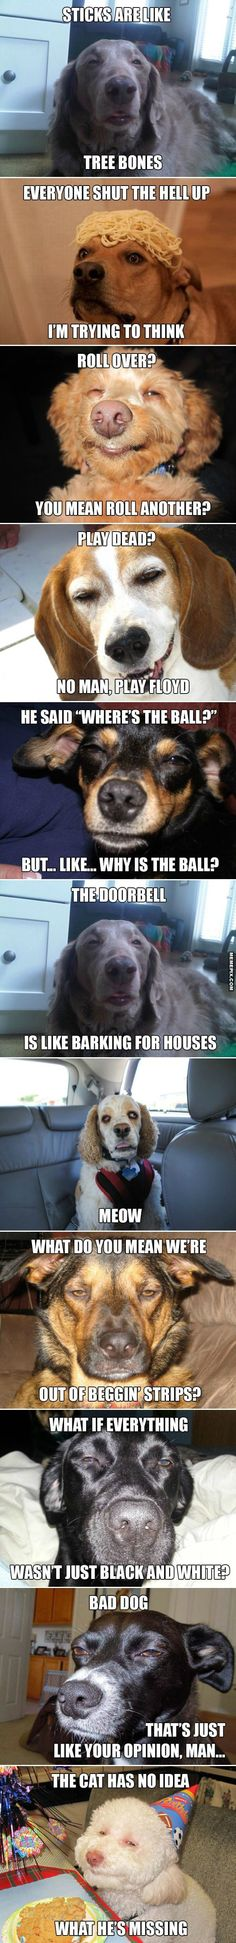 high dogs... Who comes up with this stuff?? :D